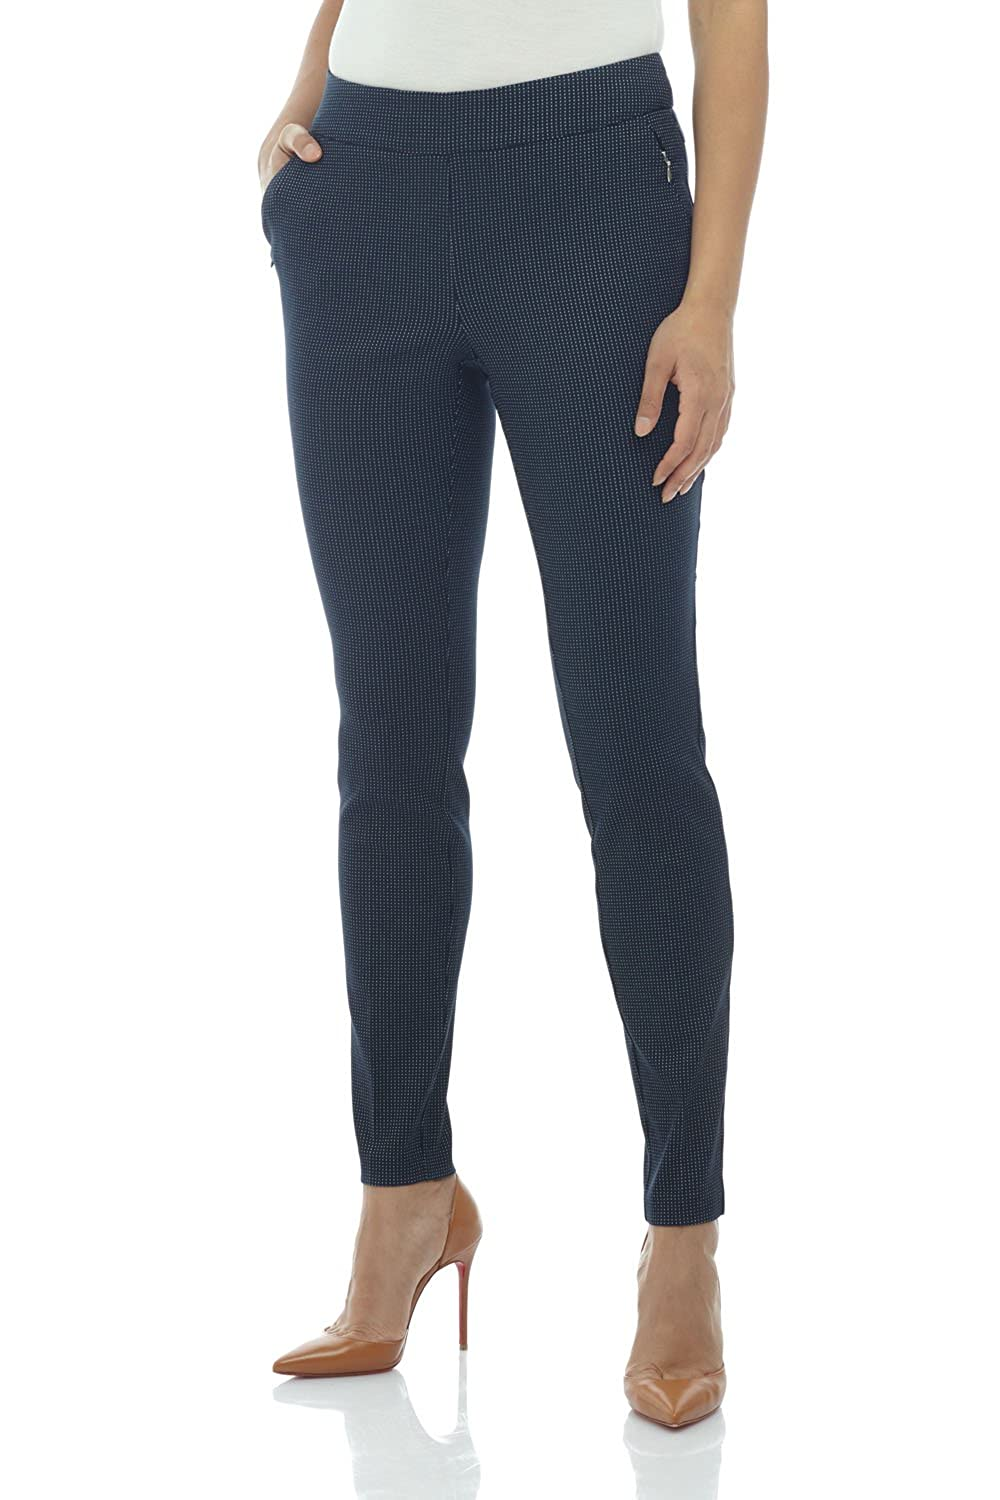 Navy White Dotted Lines Rekucci Women's Ease in to Comfort Modern Stretch Skinny Pant w Tummy Control